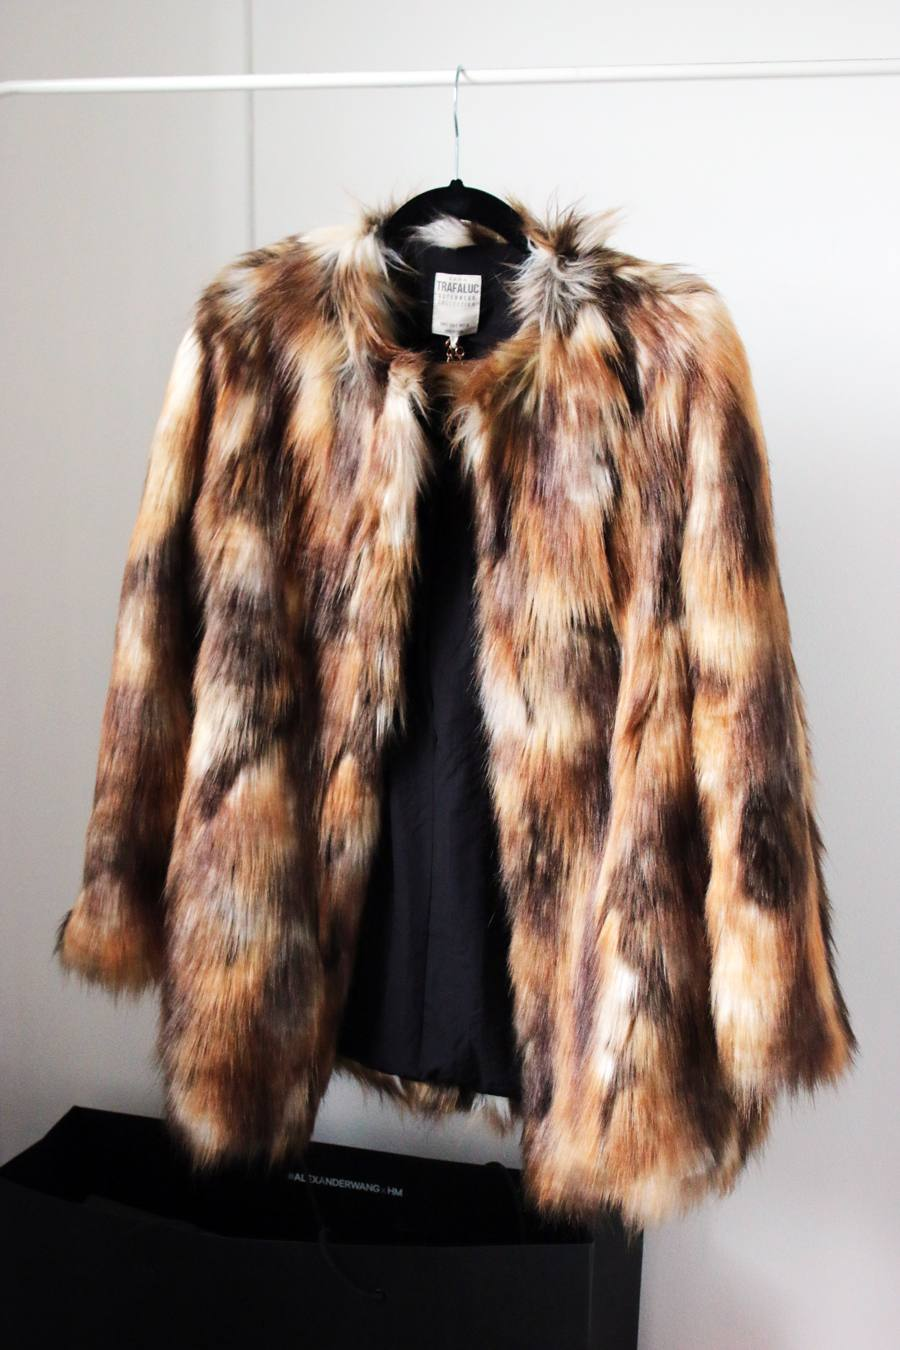 ZARA Women's Fur Coats ZARA Women's Coats All Women's fur coats All Women's fur coats Price can drop! Are you waiting for sale? We will tell you, when price on this product drops. Submit. Get back in stock alert! We will tell you when this product gets back in stock. Submit ×.